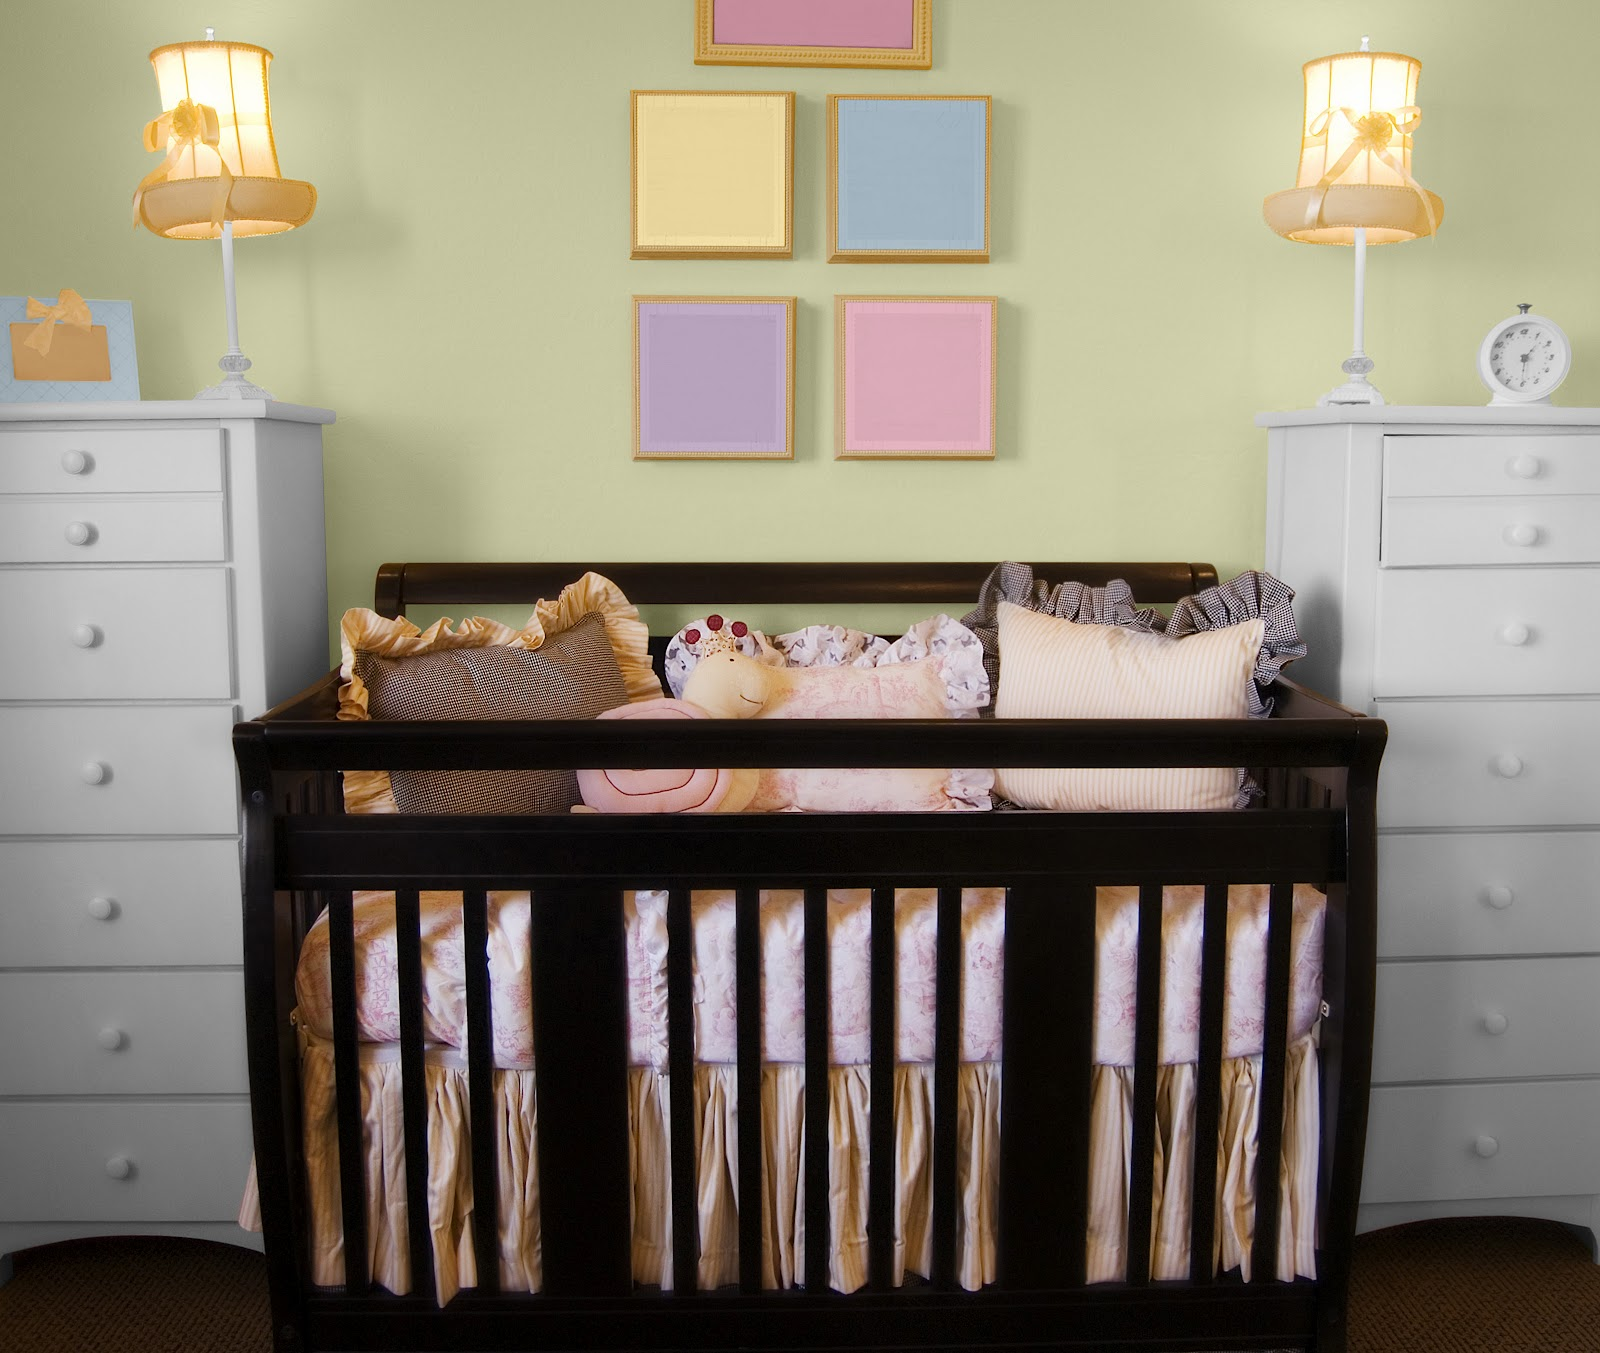 Top 10 baby nursery room colors and decorating ideas for Baby nursery mural